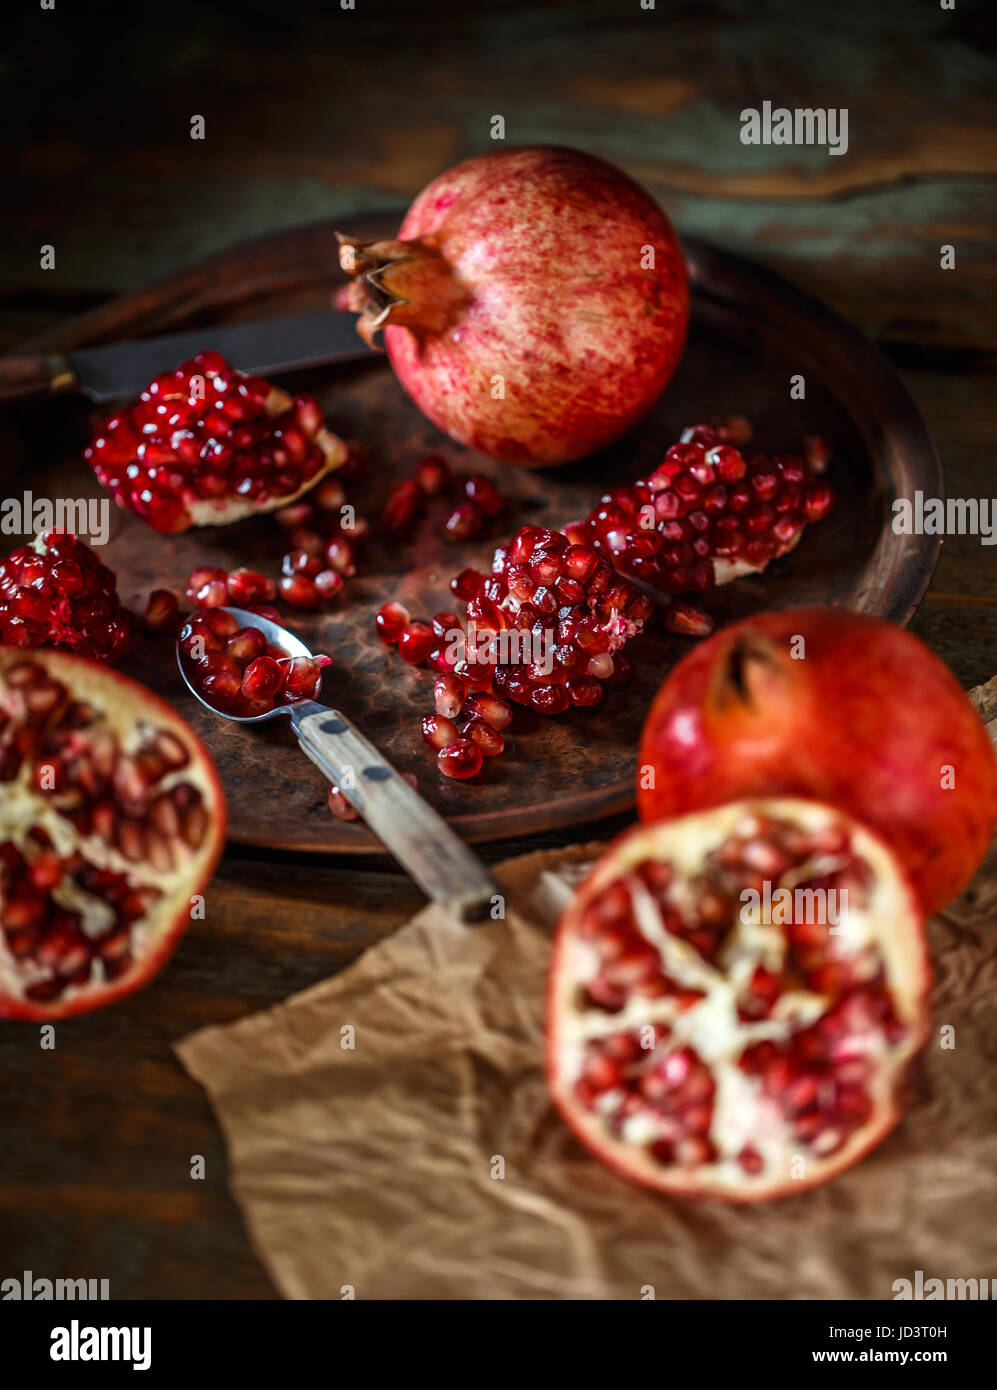 Red juicy pomegranate, whole and broken, on rustic background - Stock Image